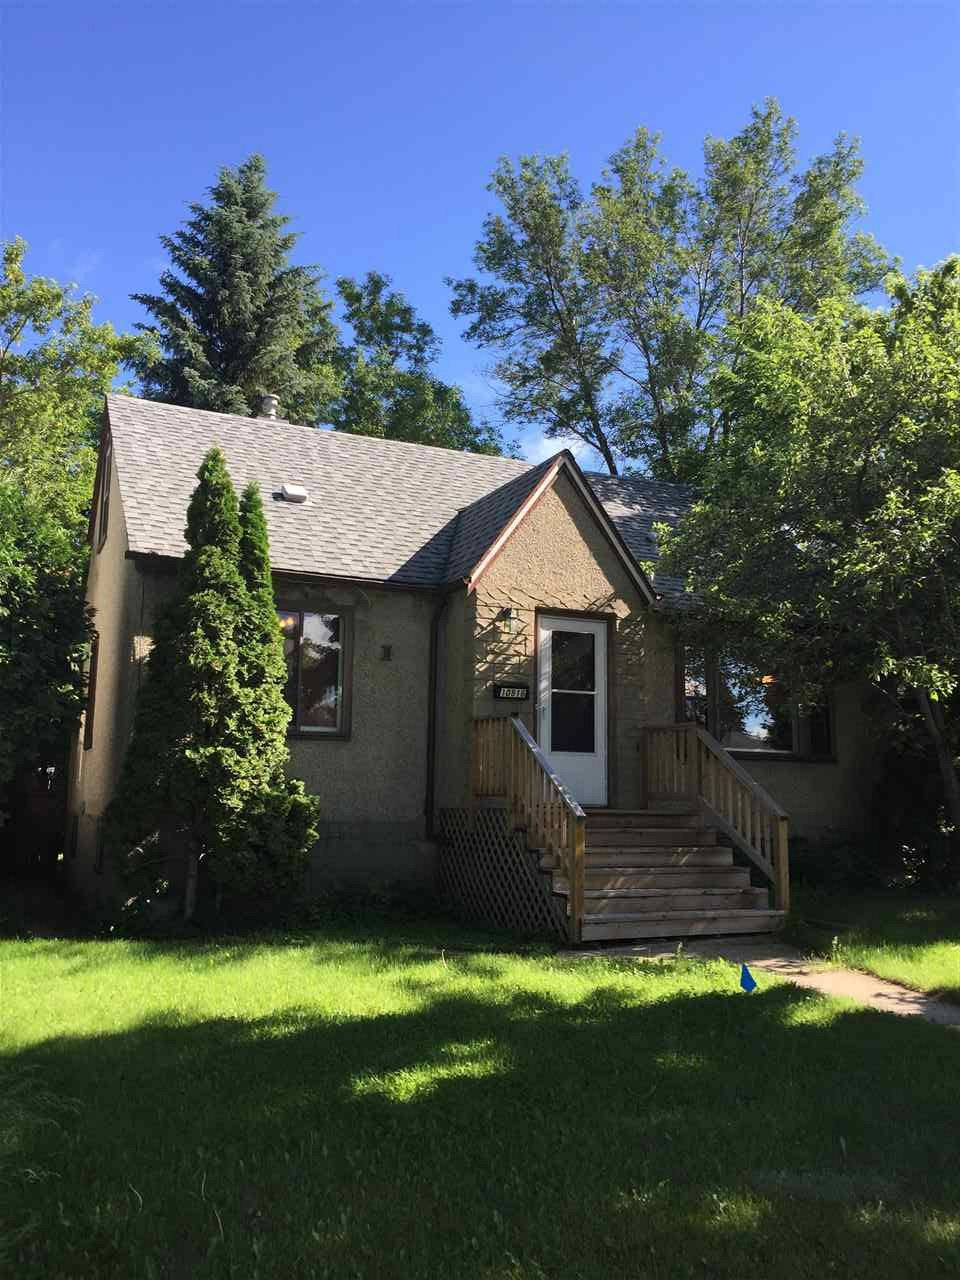 Main Photo: 10816 61 Avenue in Edmonton: Zone 15 House for sale : MLS(r) # E4069734